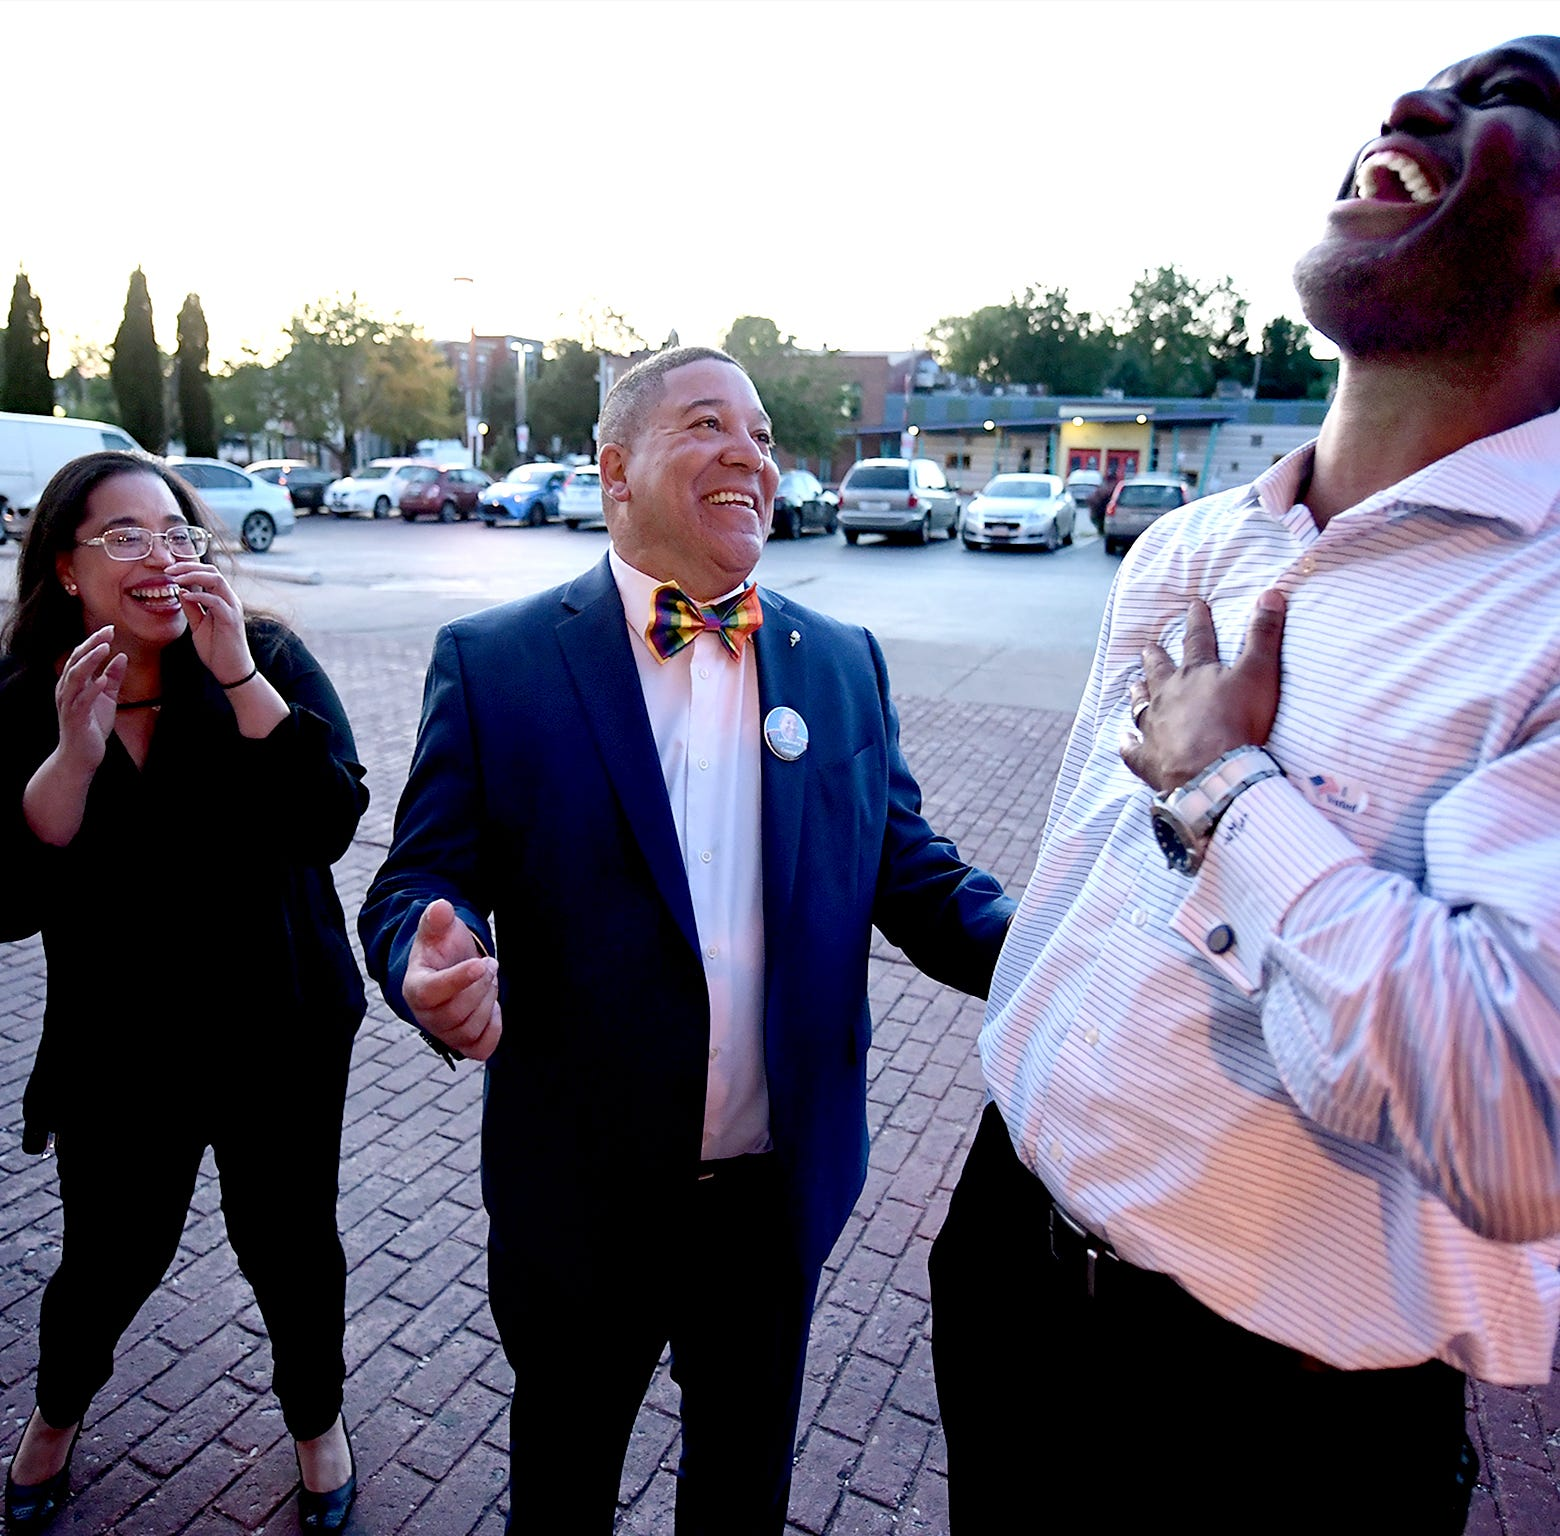 Rivera set to be York's first gay, Latino councilman after primary win